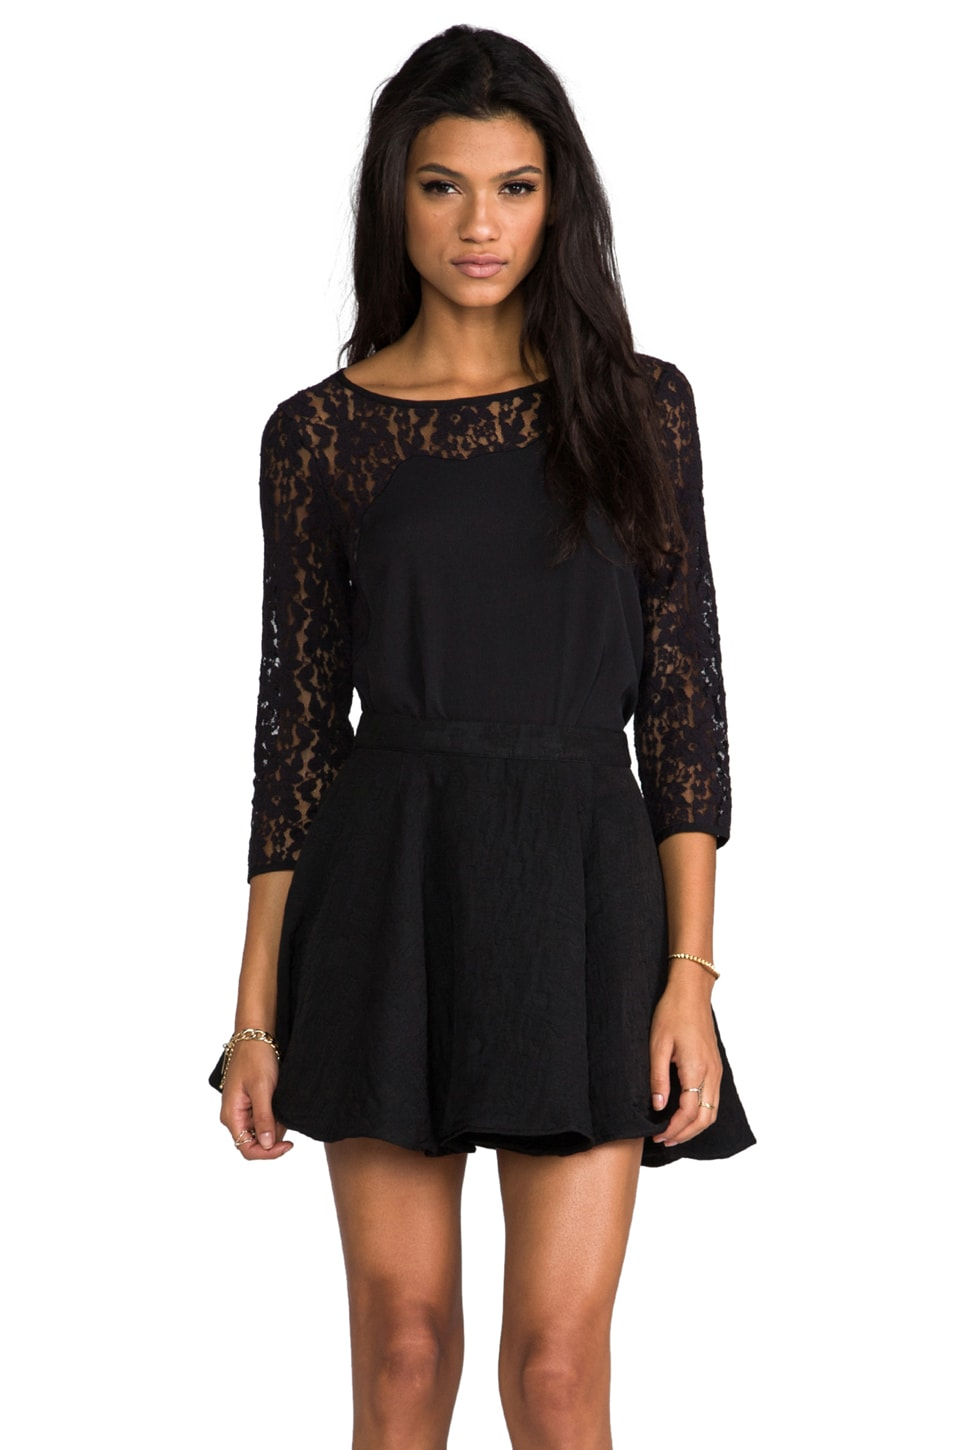 Juicy Couture Fabric Mix Lace Top in Black